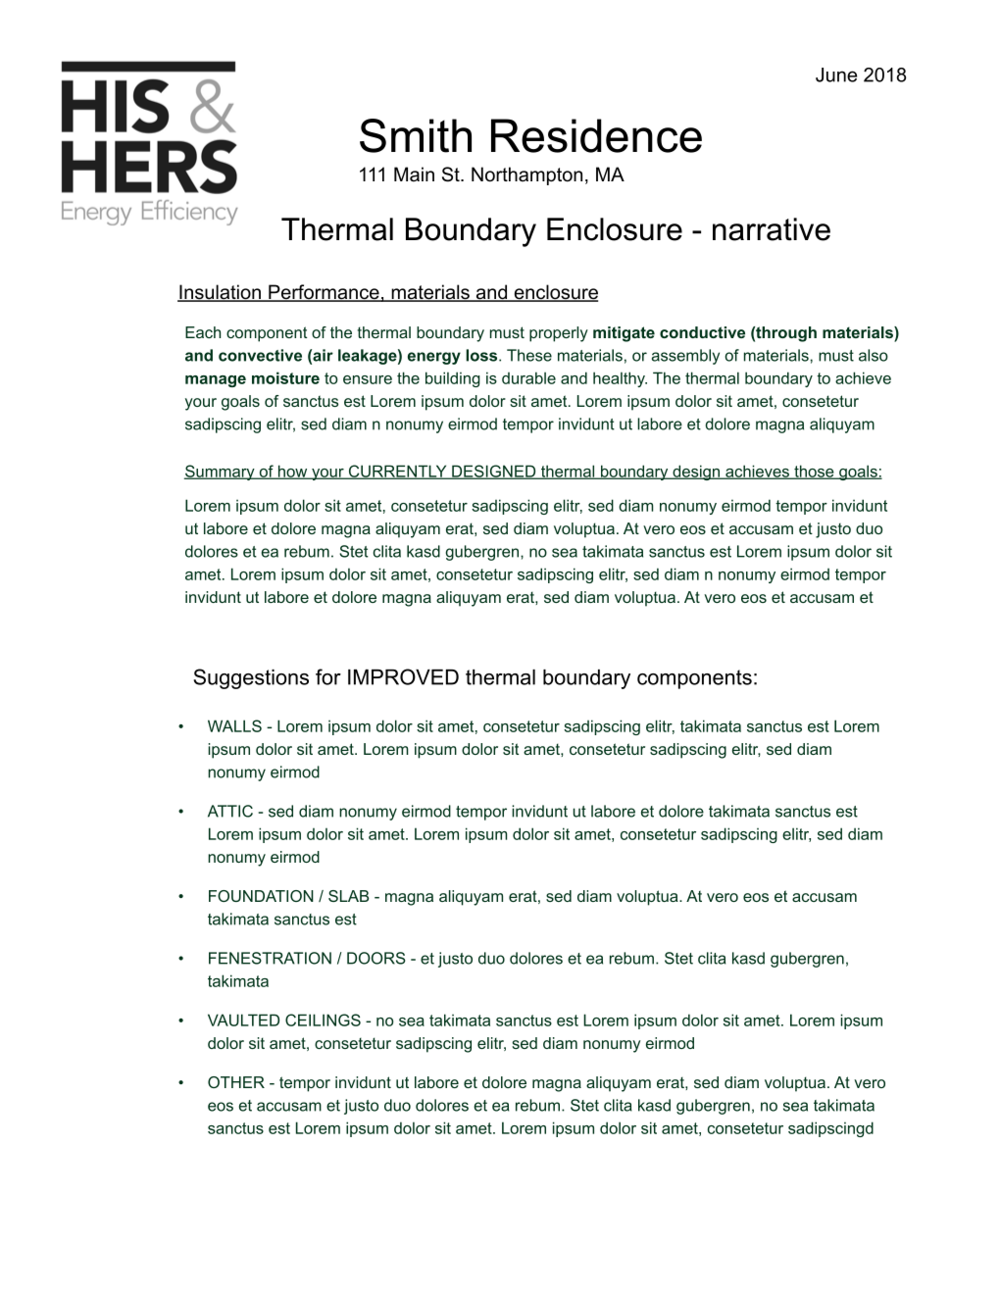 Thermal Boundary - narrative